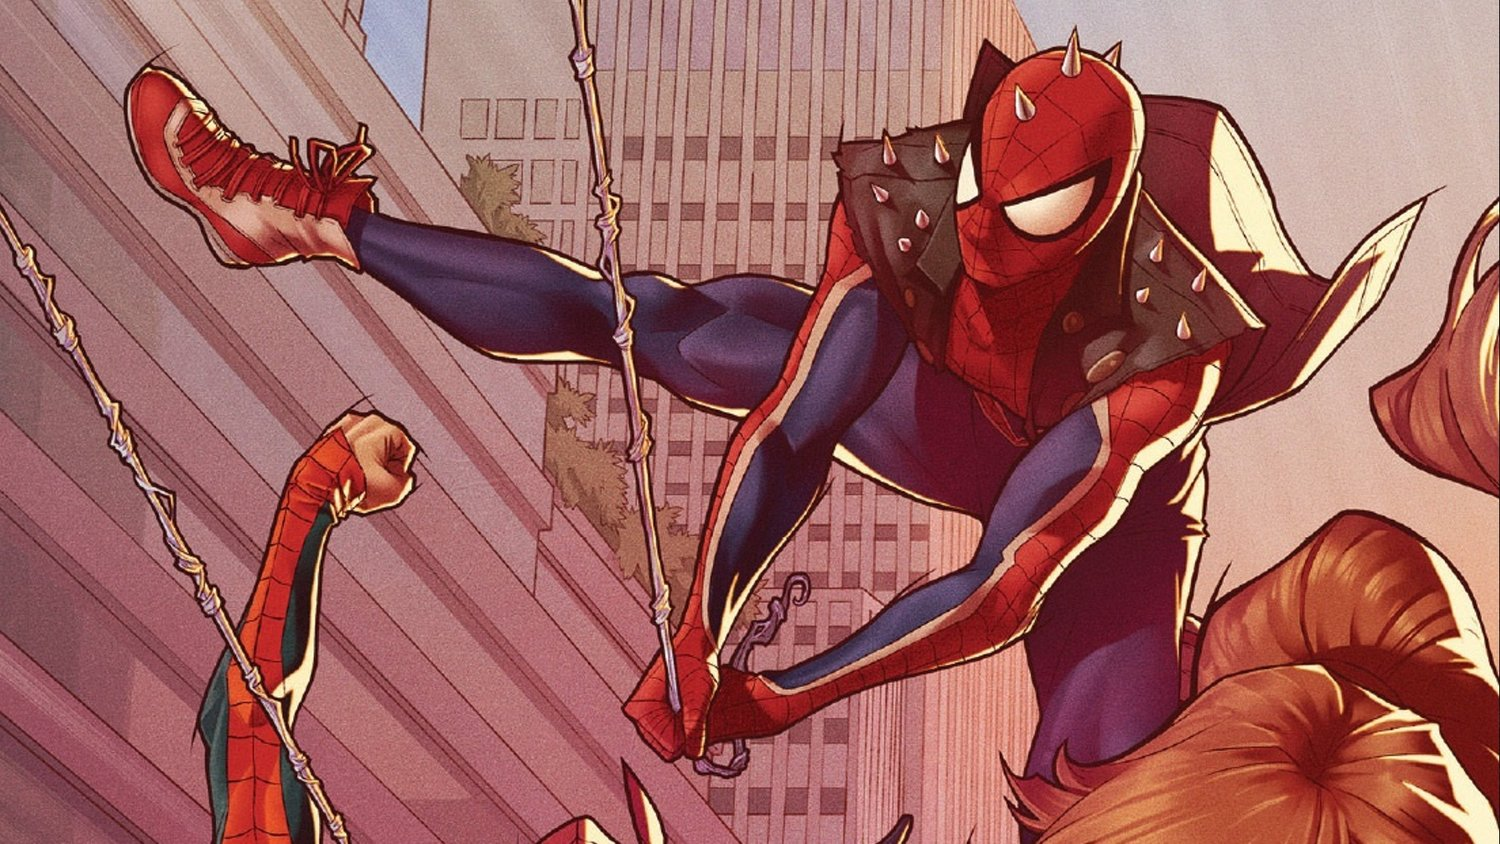 Marvel Lists Their Top 10 Favorite Spider-Man Costumes From The Comics